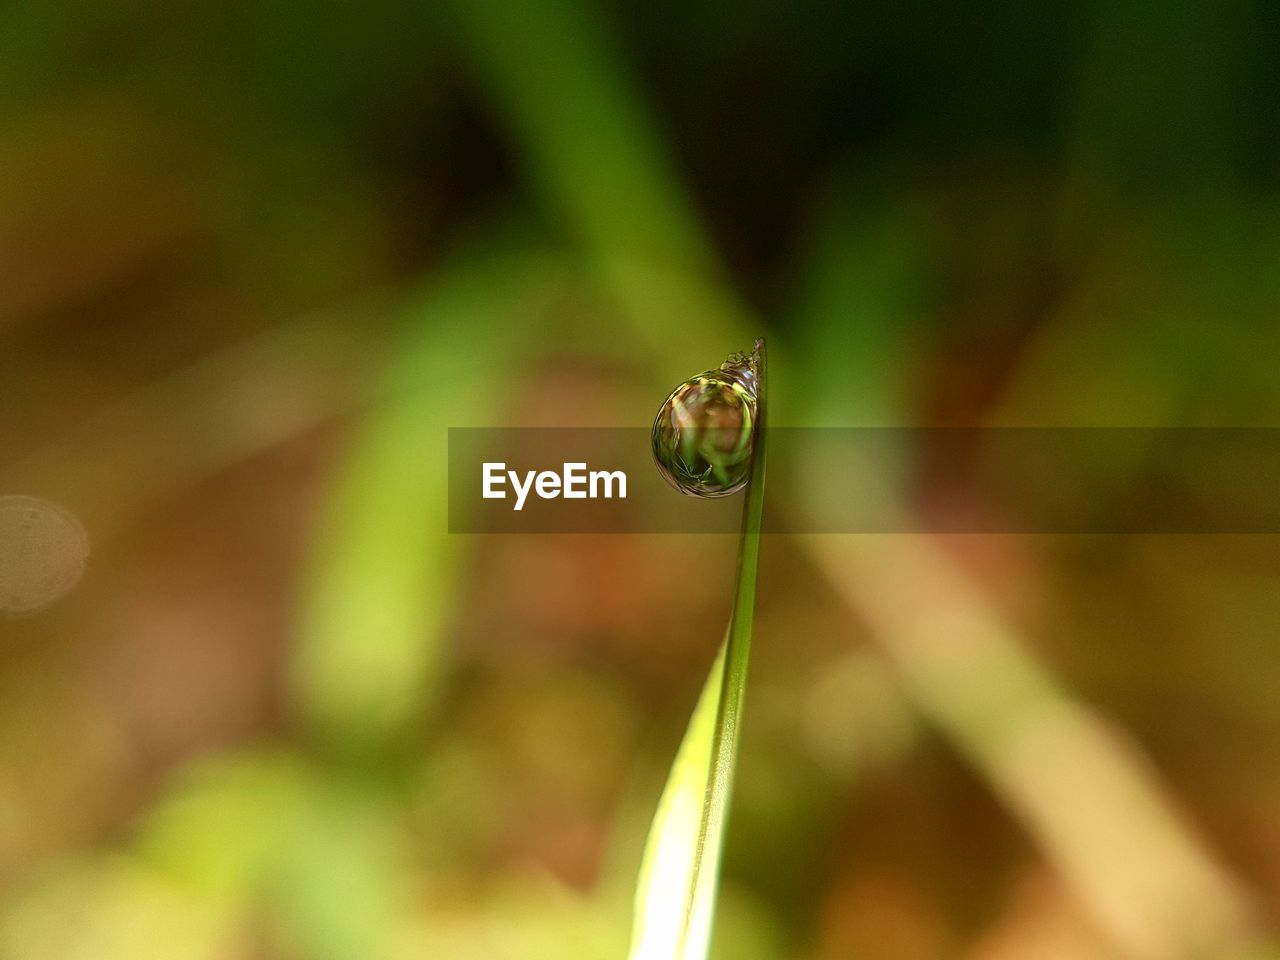 close-up, plant, green color, beauty in nature, animals in the wild, growth, day, animal themes, one animal, focus on foreground, animal, animal wildlife, invertebrate, selective focus, nature, no people, insect, fragility, outdoors, vulnerability, blade of grass, purity